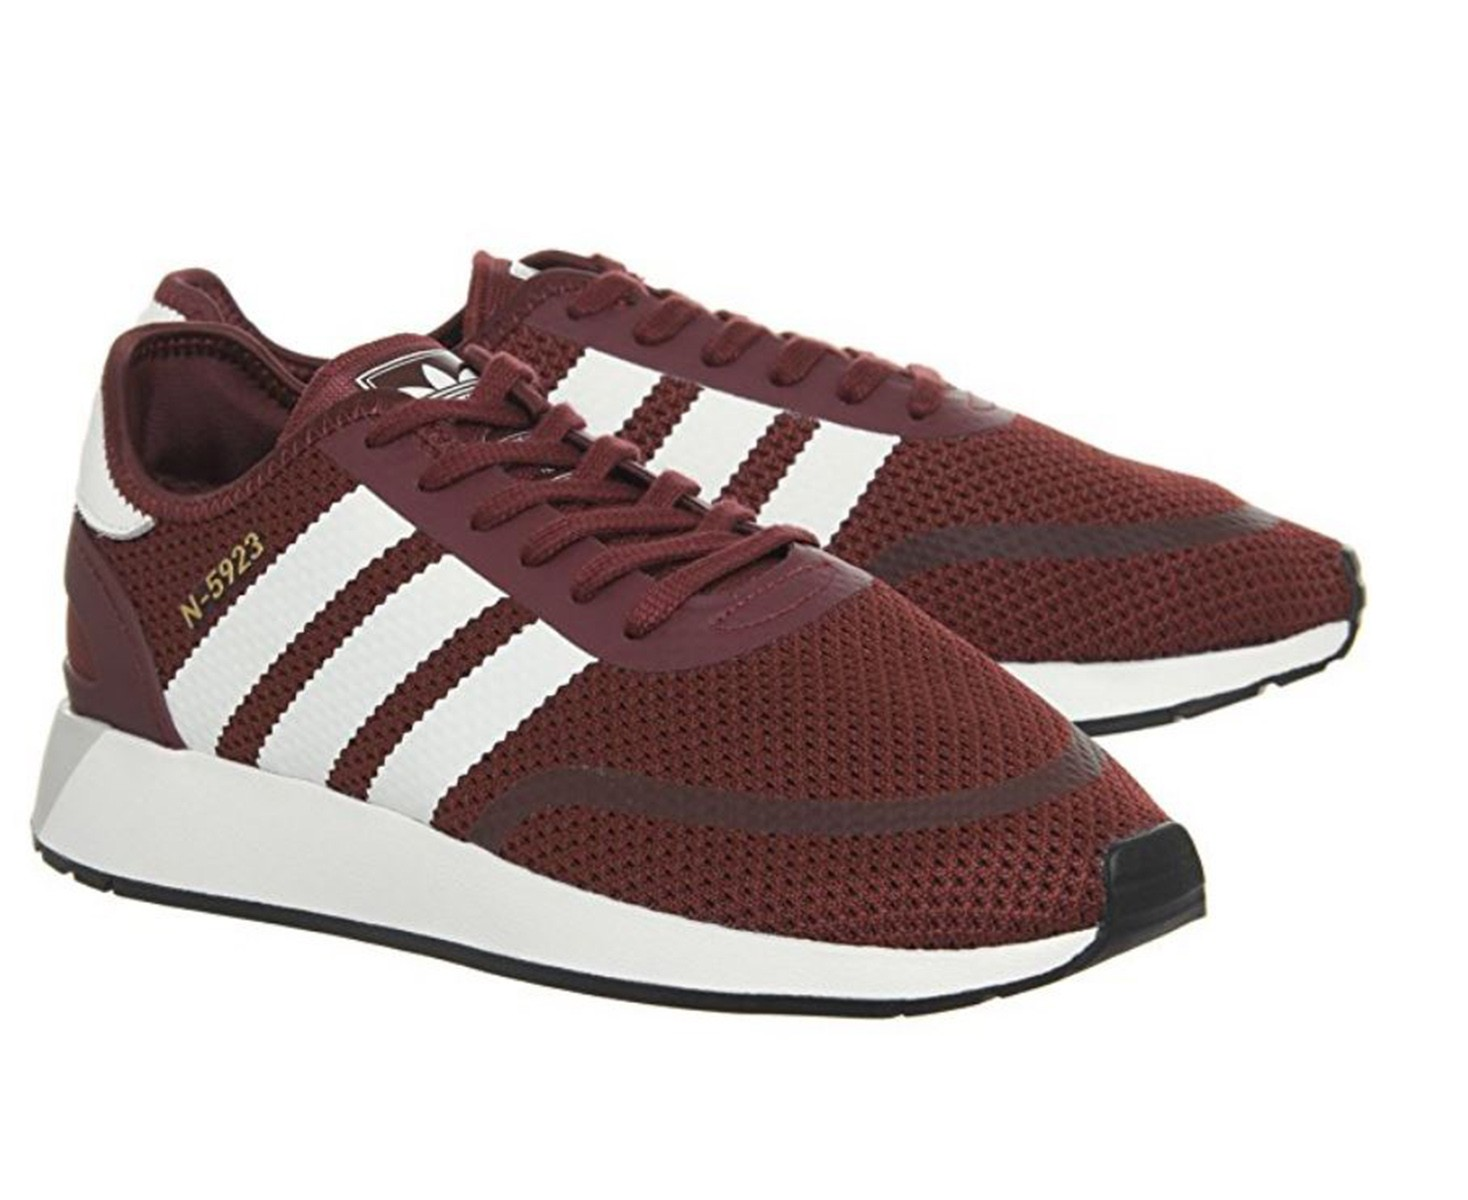 Scarpe uomo sneakers ADIDAS N5923 in tessuto rosso DB0960